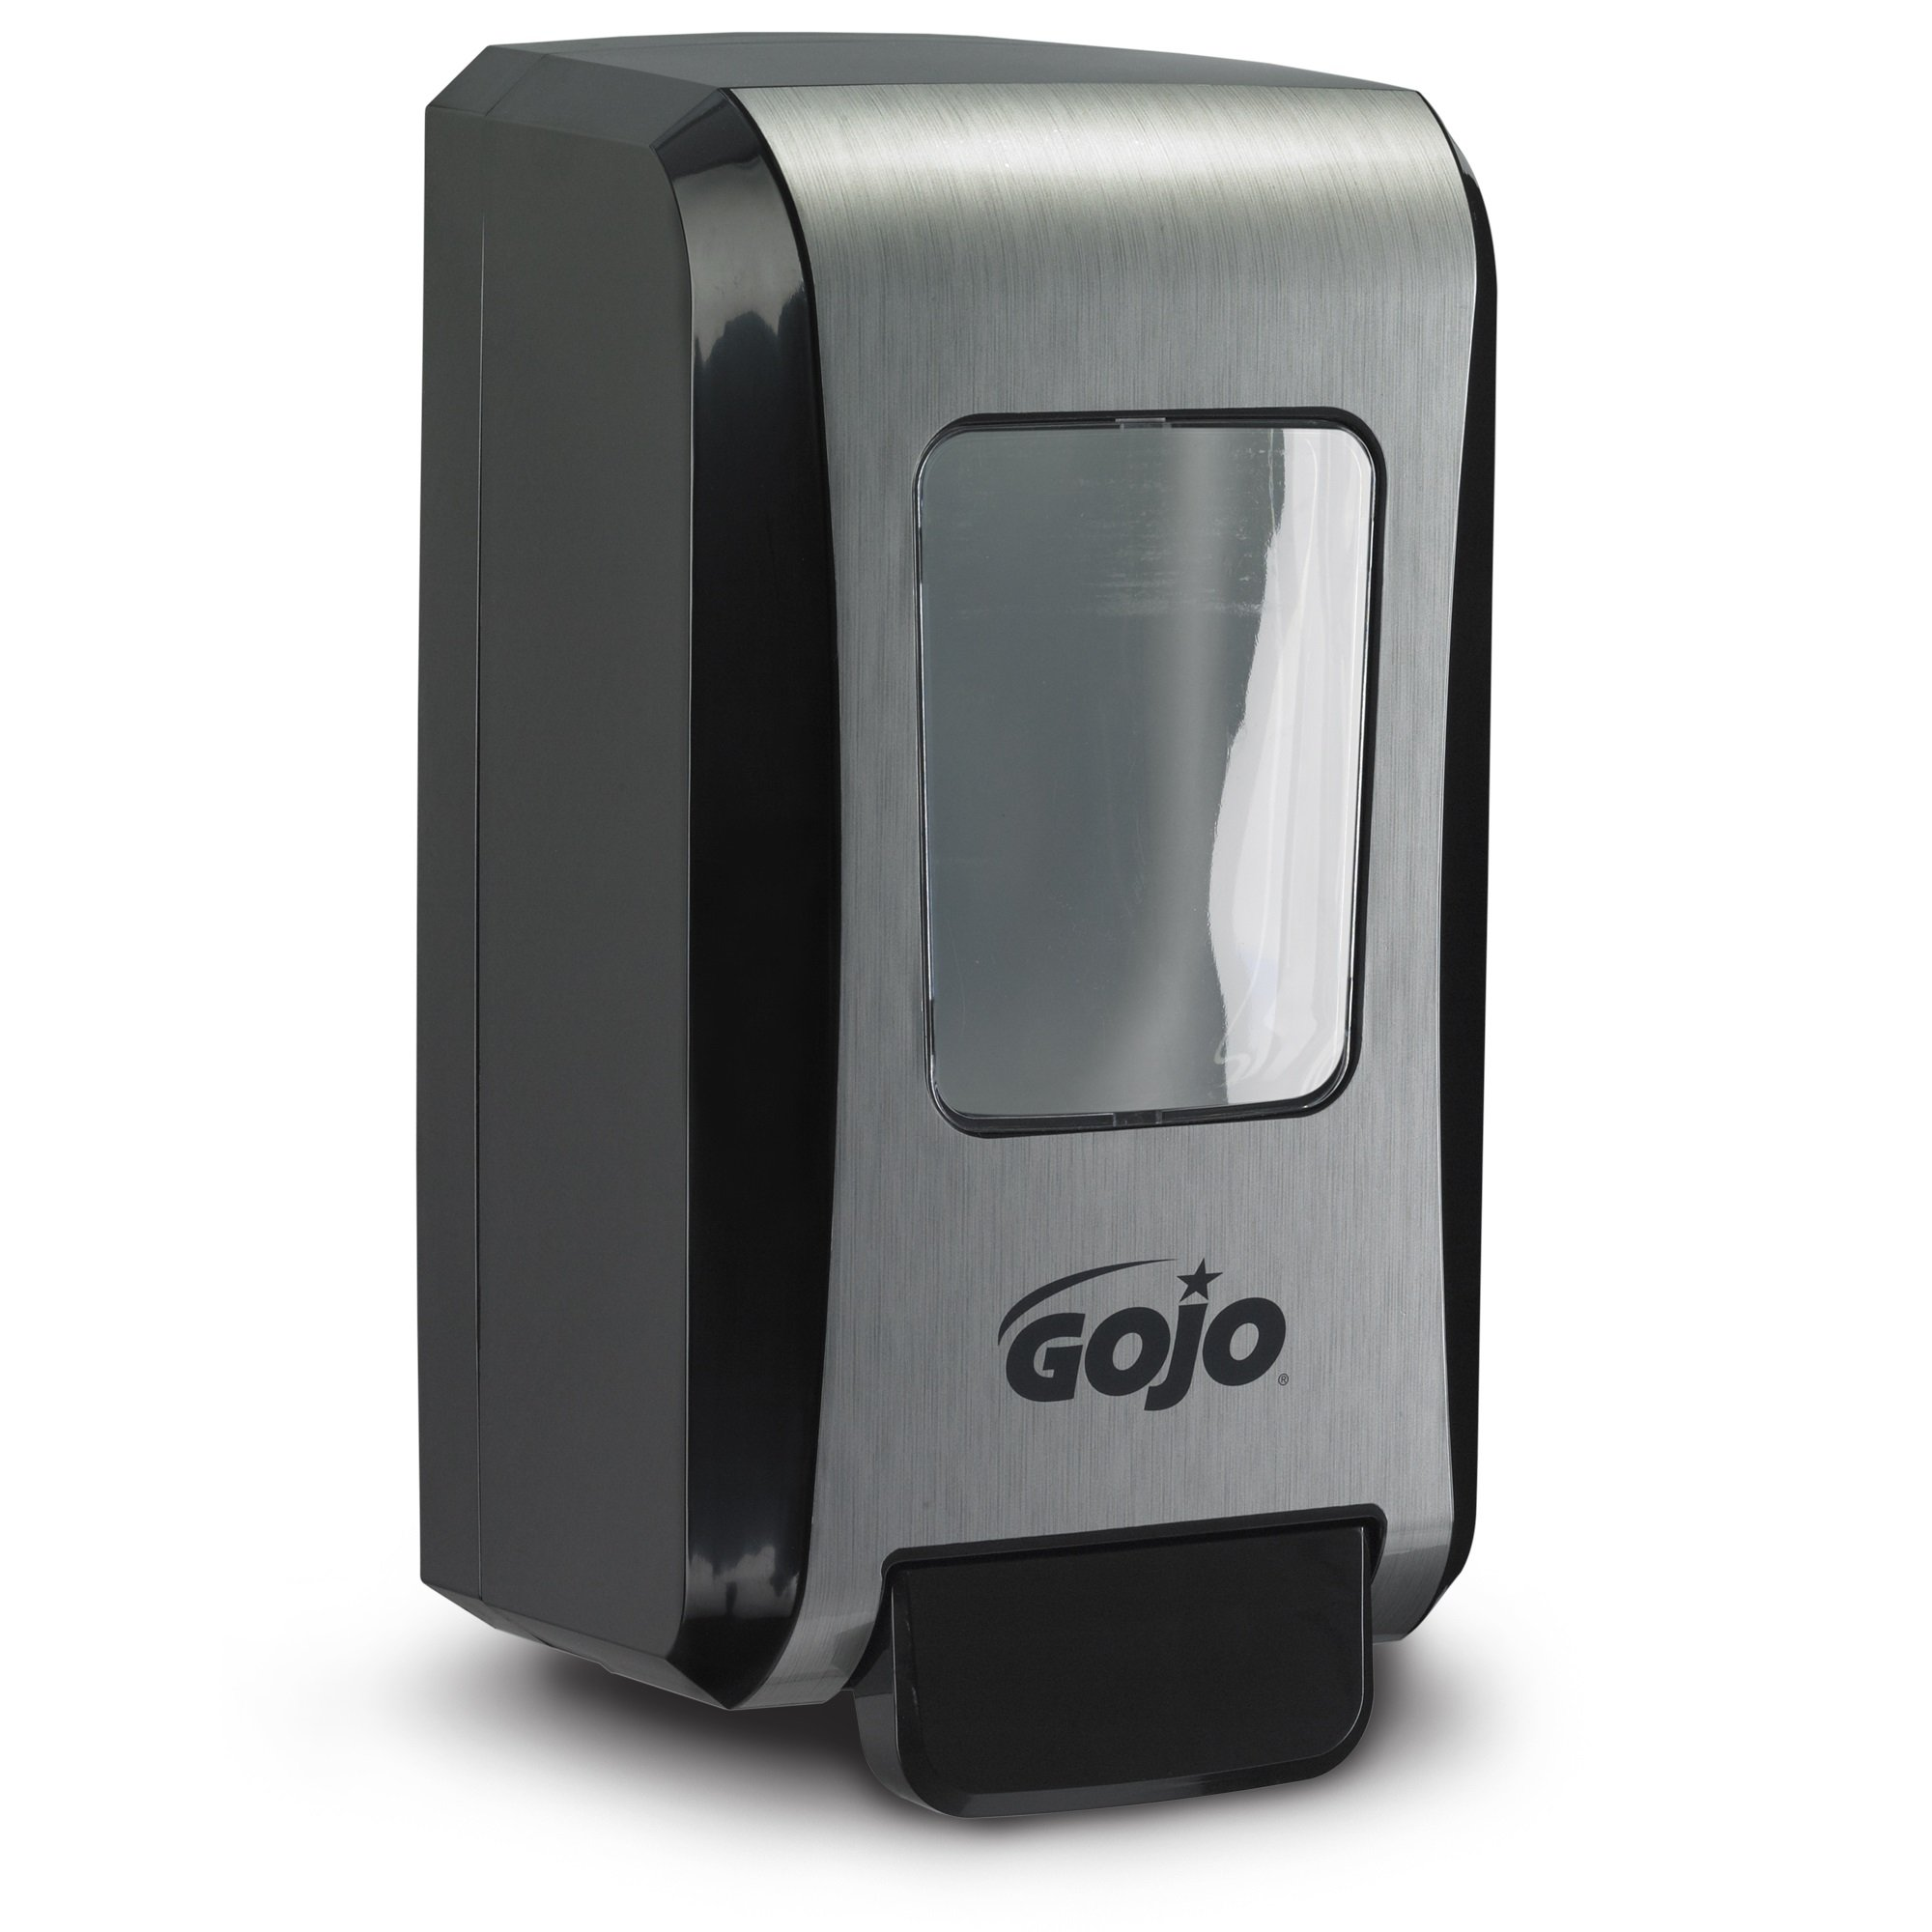 GOJO FMX-20 Dispenser, Black/Gray (Case of 6) by Gojo